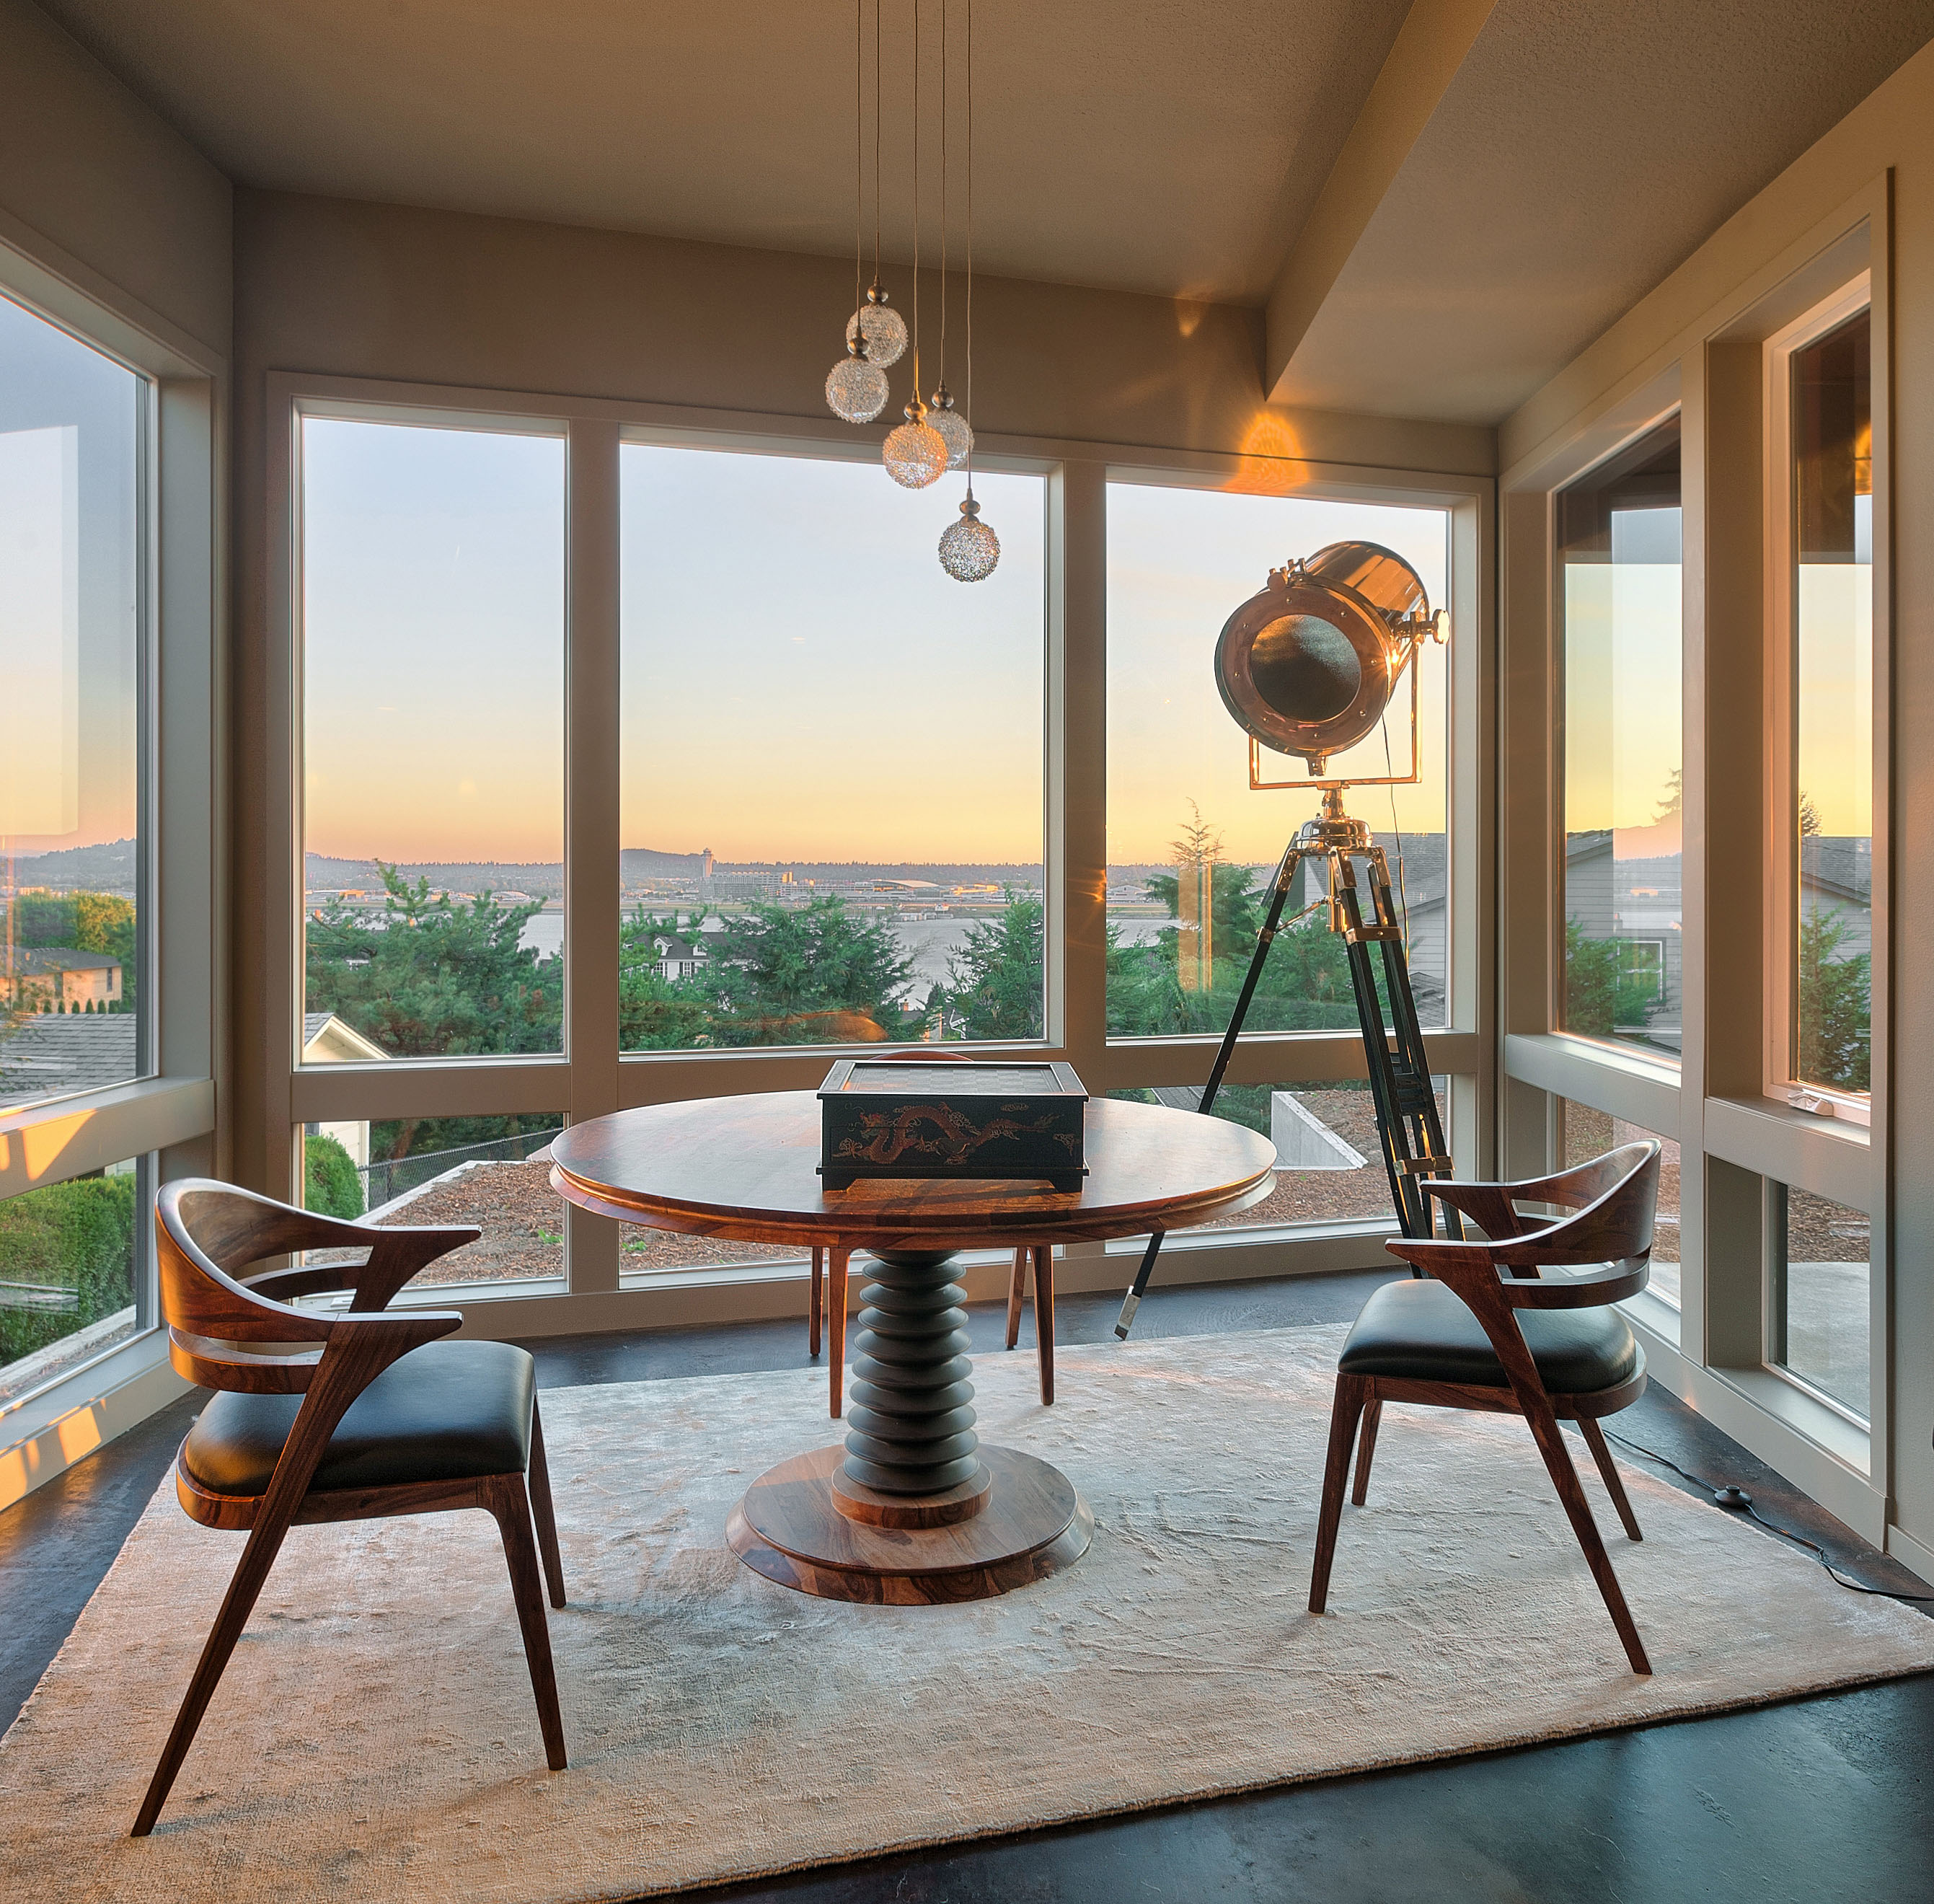 Zillow Vancouver Wa: The Art Of Luxury: Project Of The Month